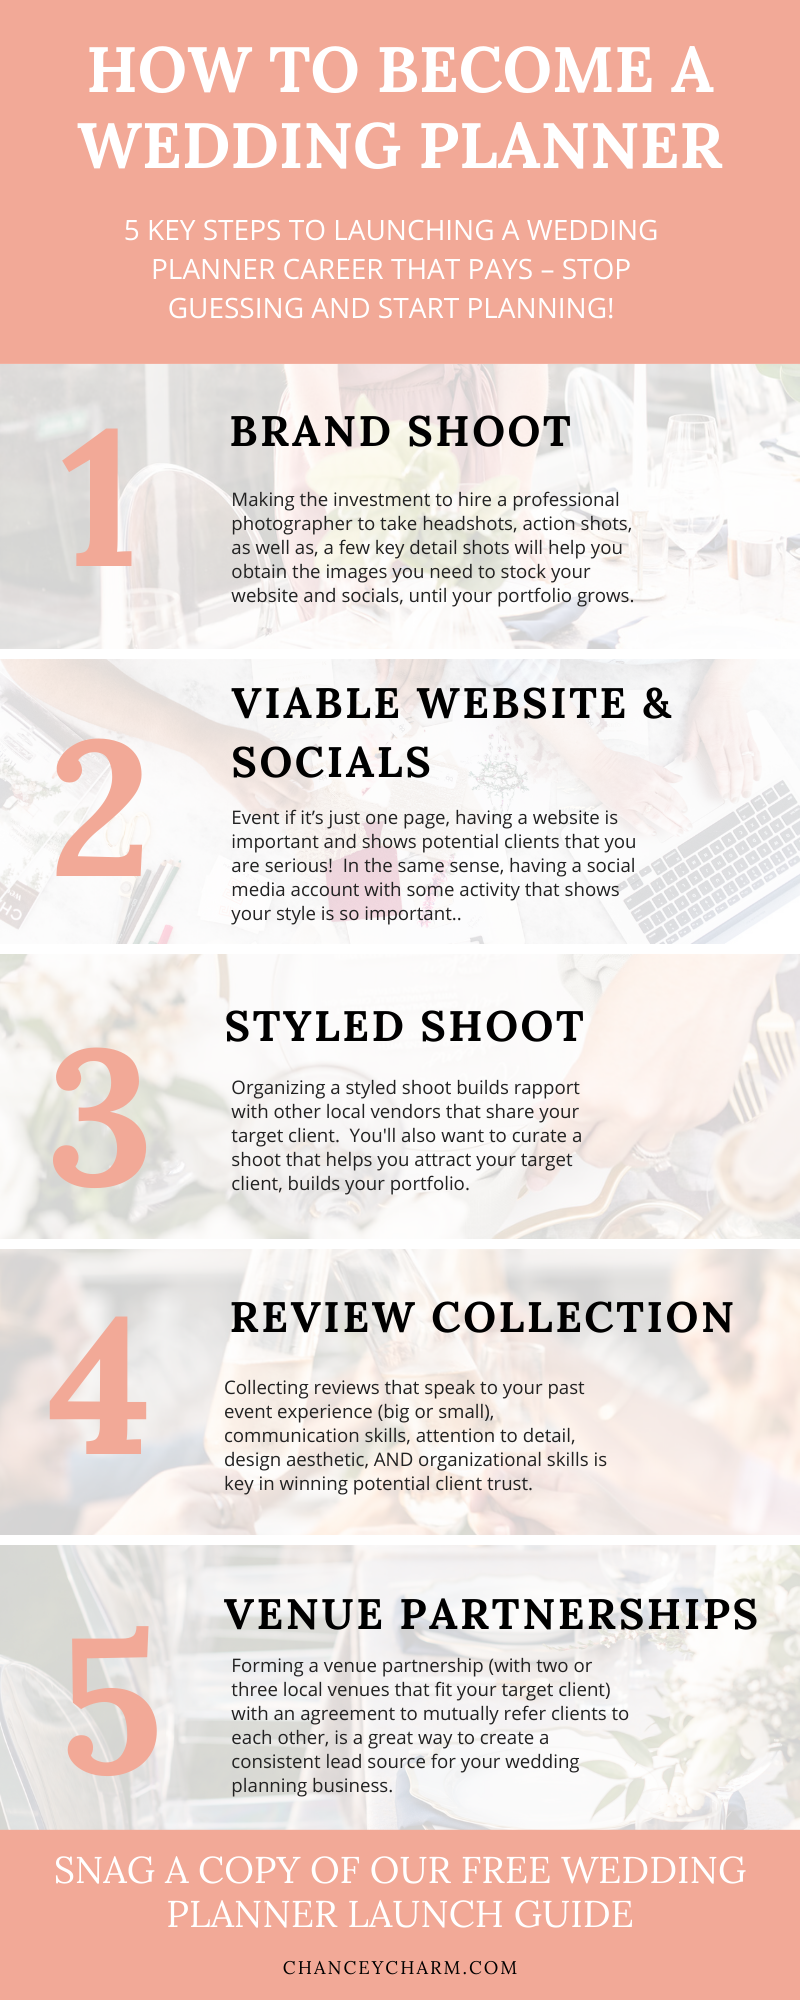 Learn How To Become A Wedding Planner Wedding Planner Academy In 2020 Free Wedding Planner Wedding Planner Binder Wedding Planner Resources